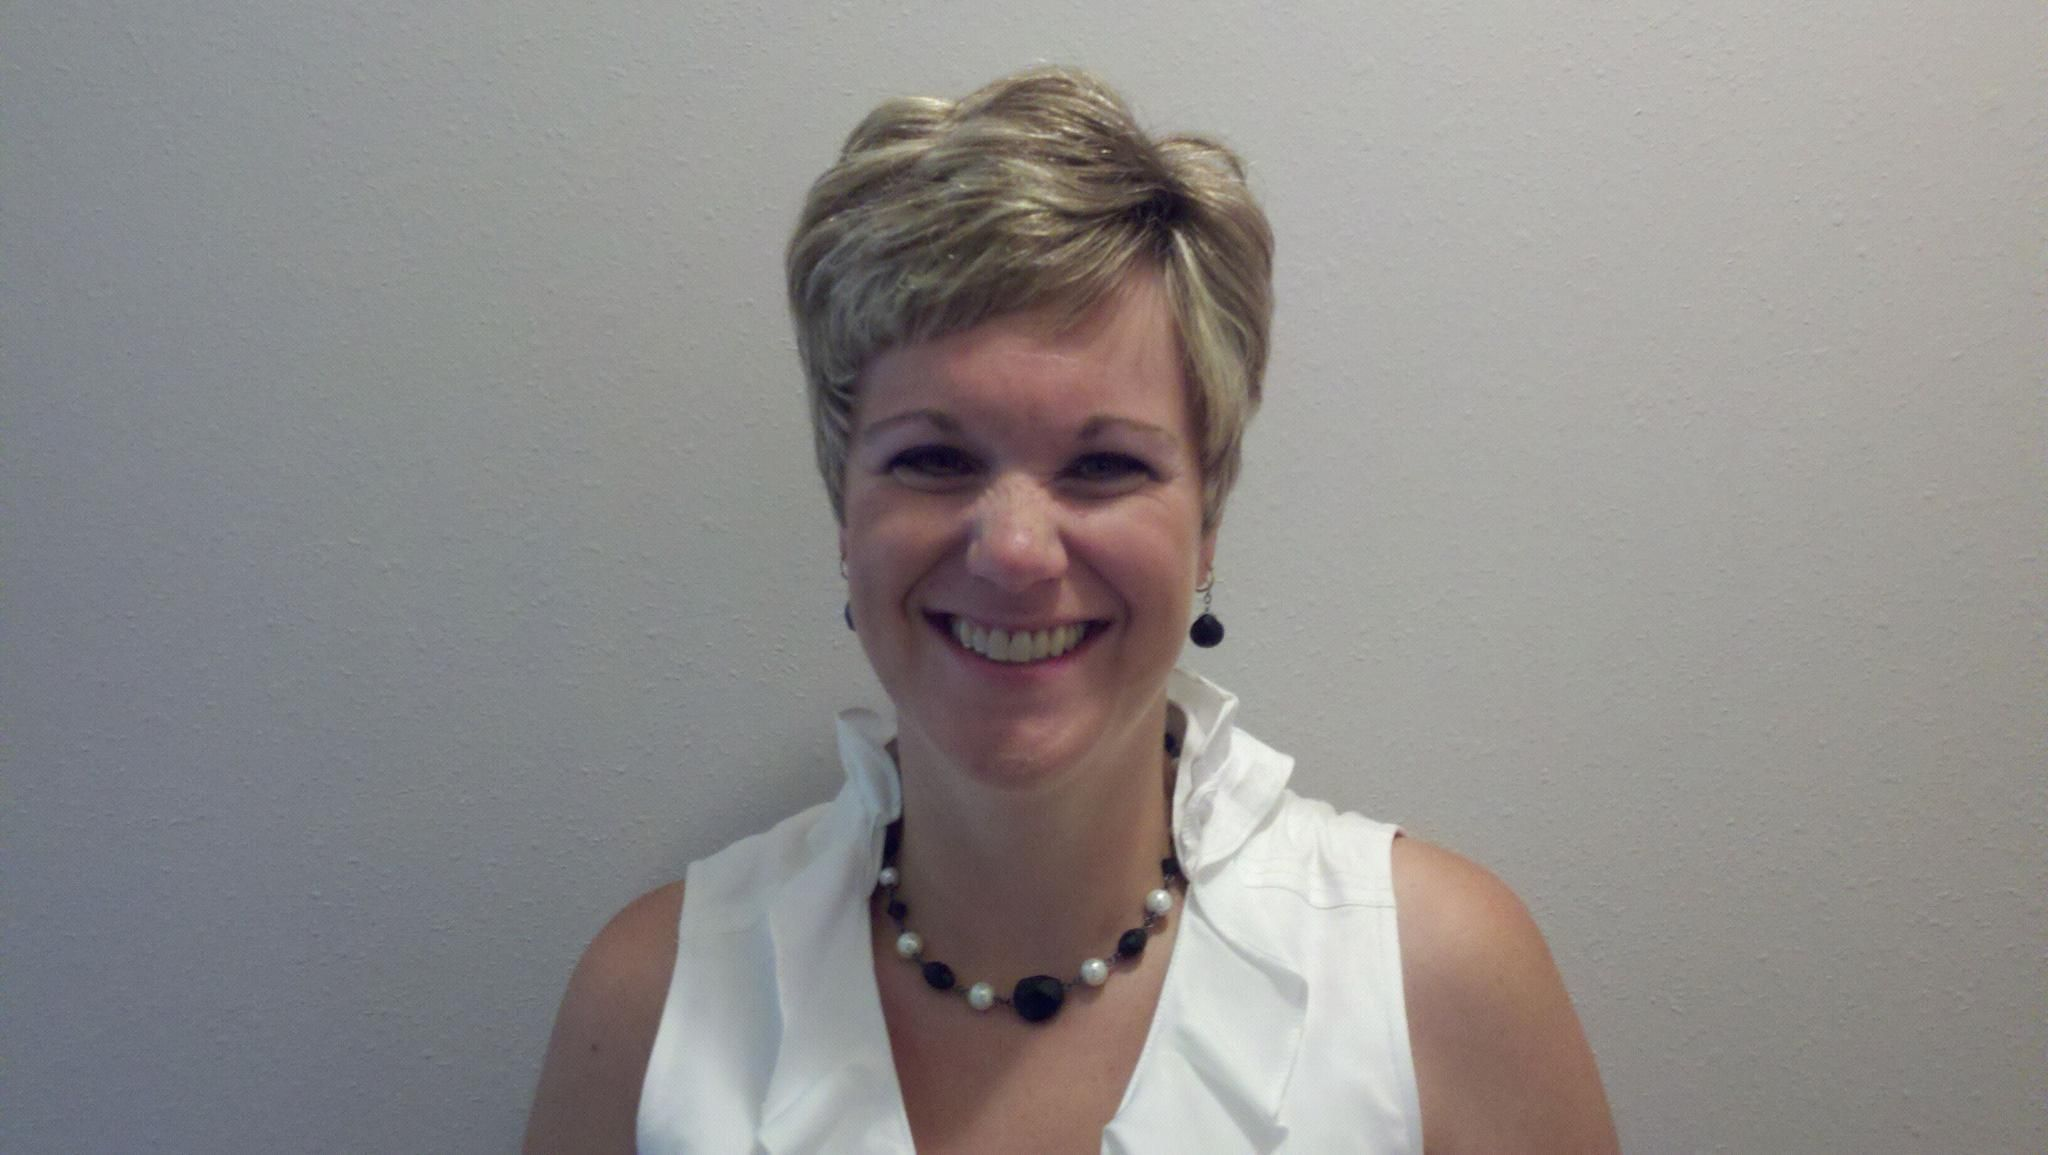 Shannon Arens, Human Resources Director